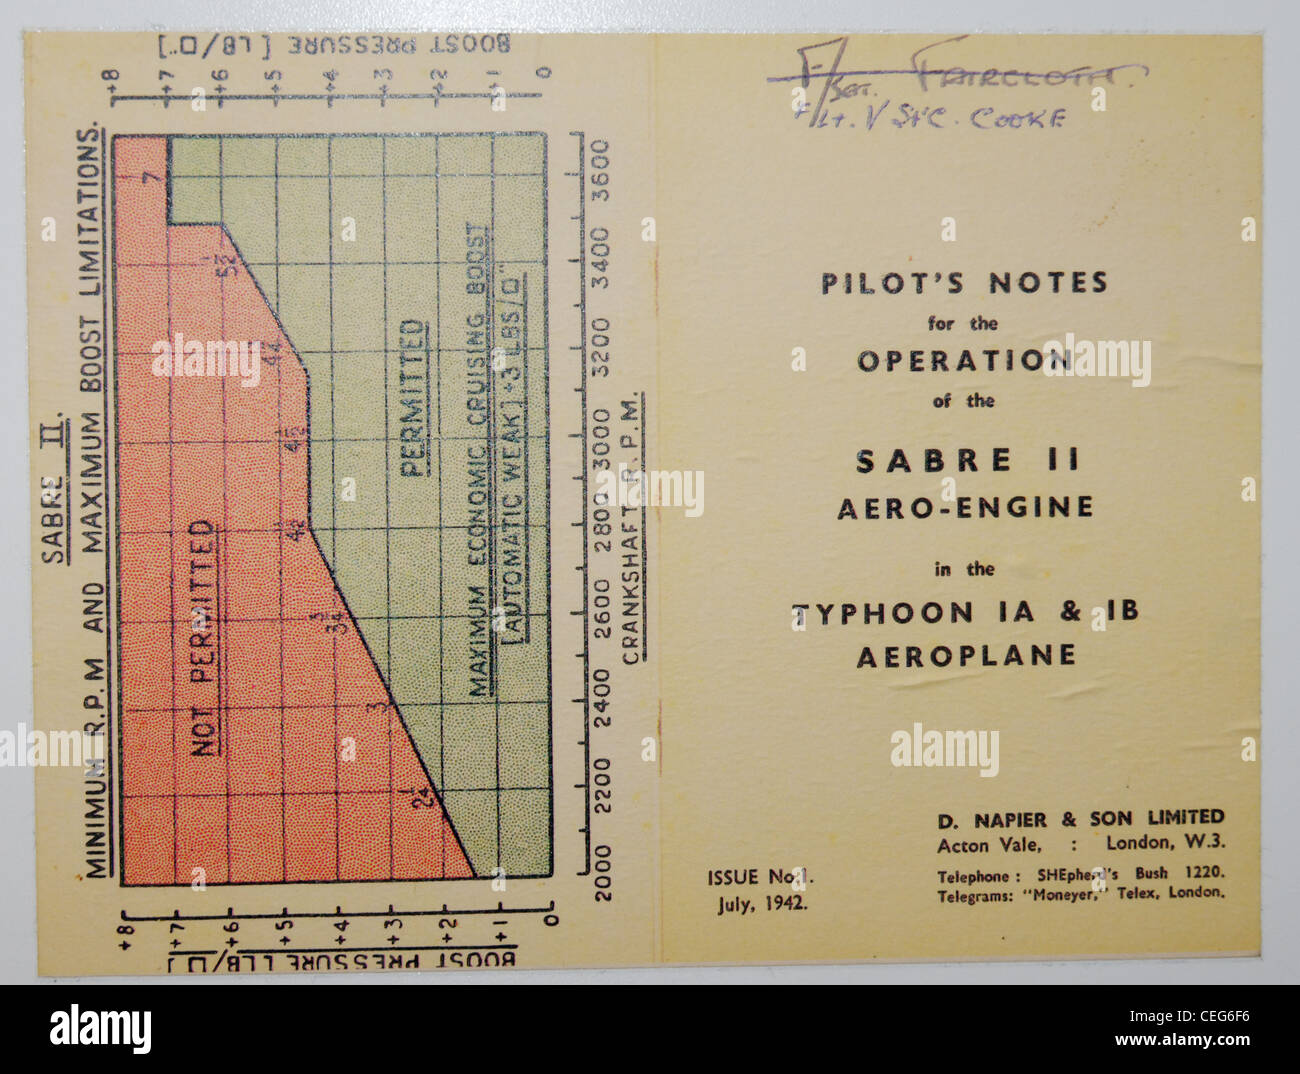 Pilots notes for the operation of the Sabre aero engine - technical notes for pilots flying the second world war - Stock Image